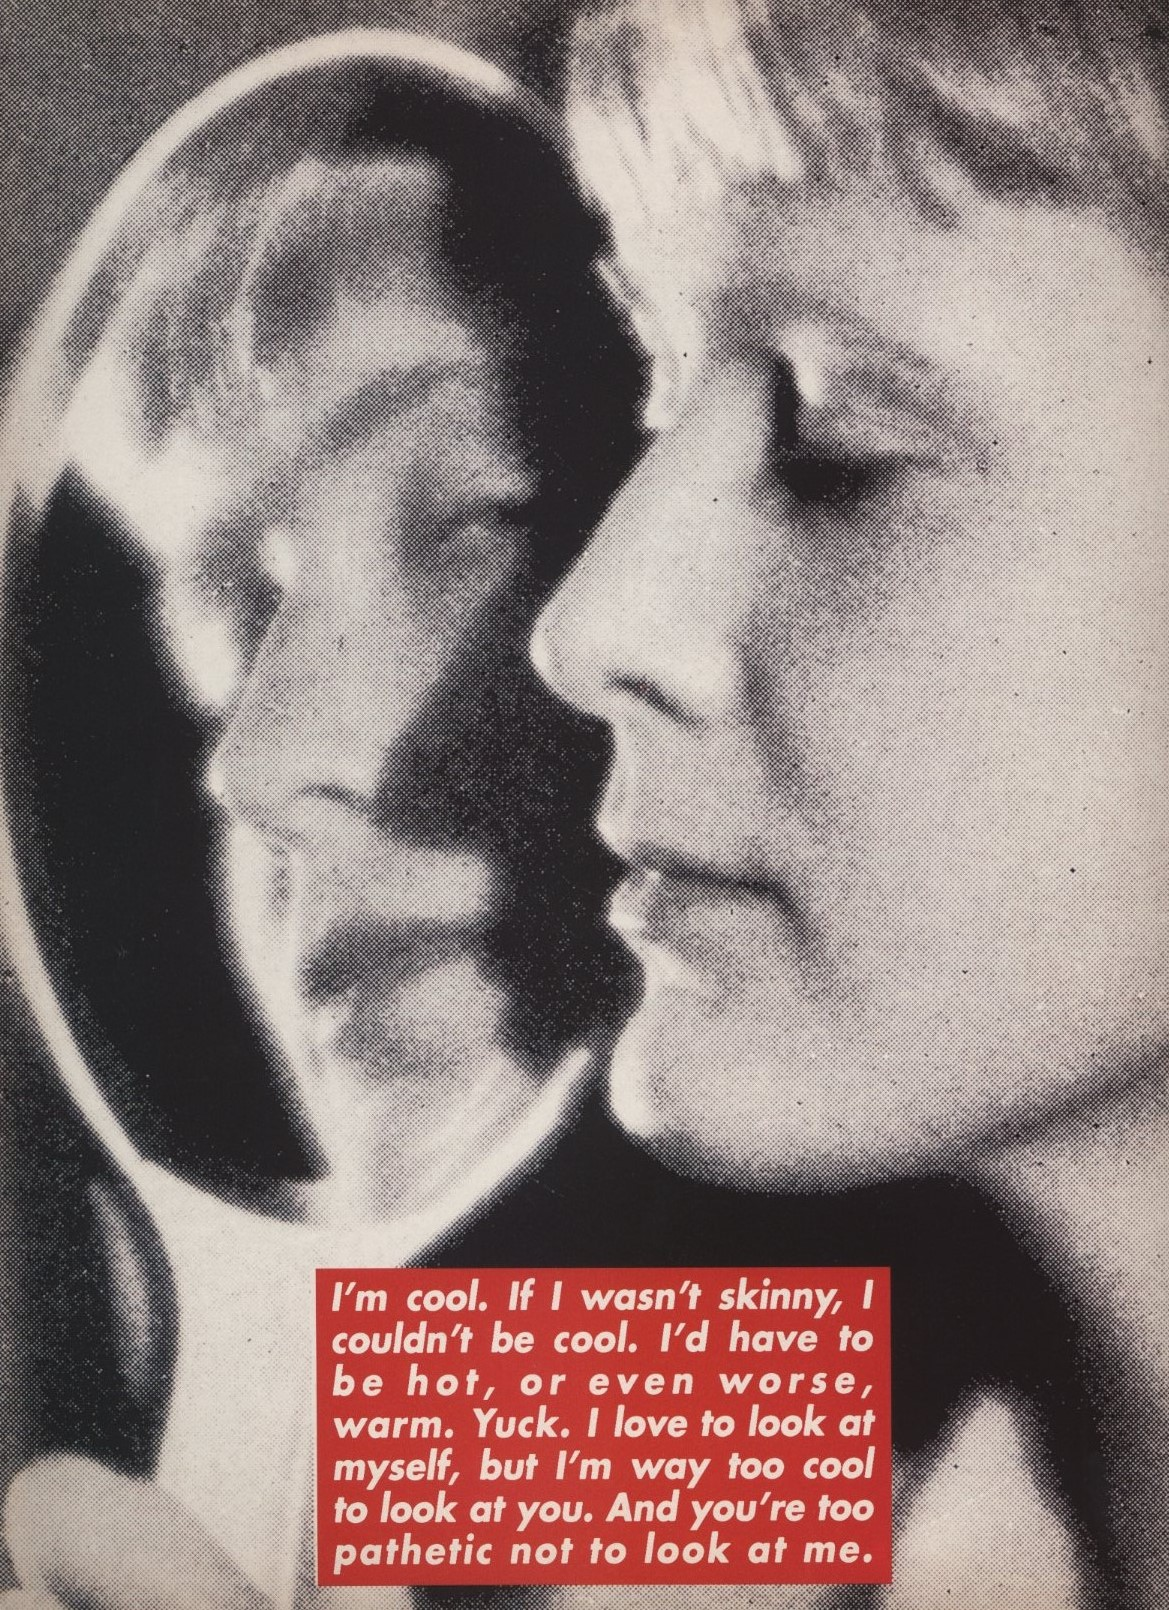 special artists project barbara kruger dazed and confused issue 21 june 1996